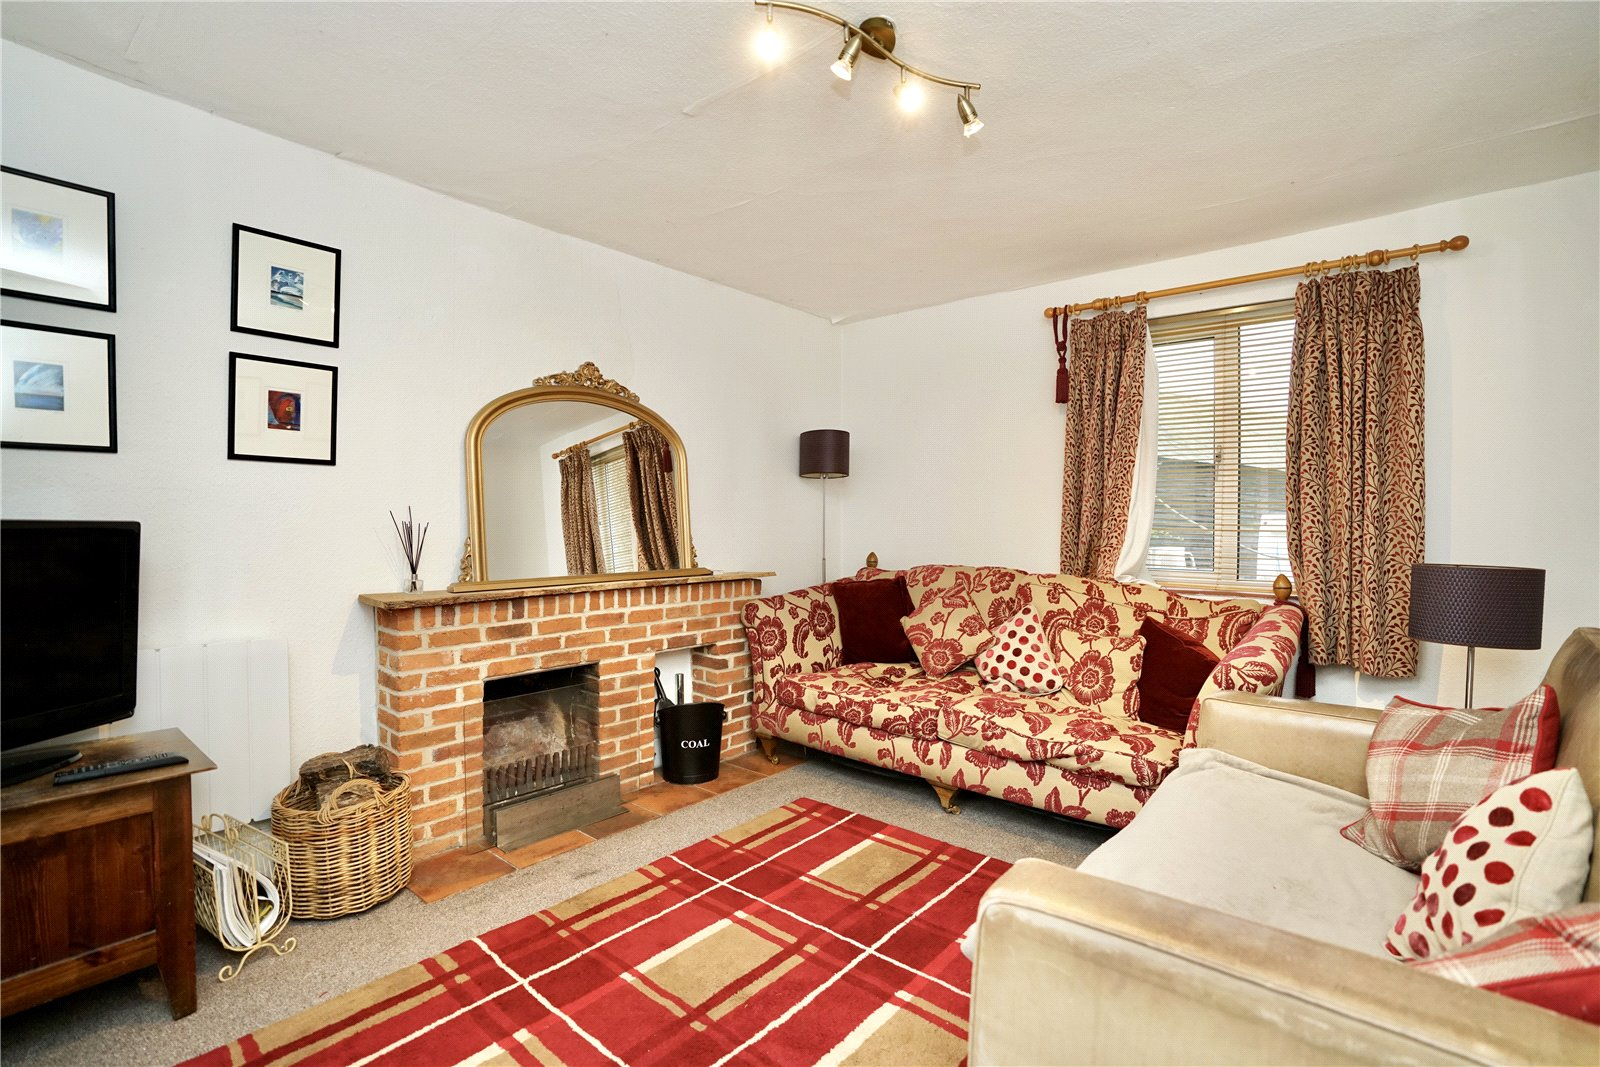 4 bed house for sale in Honeydon, Bedford  - Property Image 4